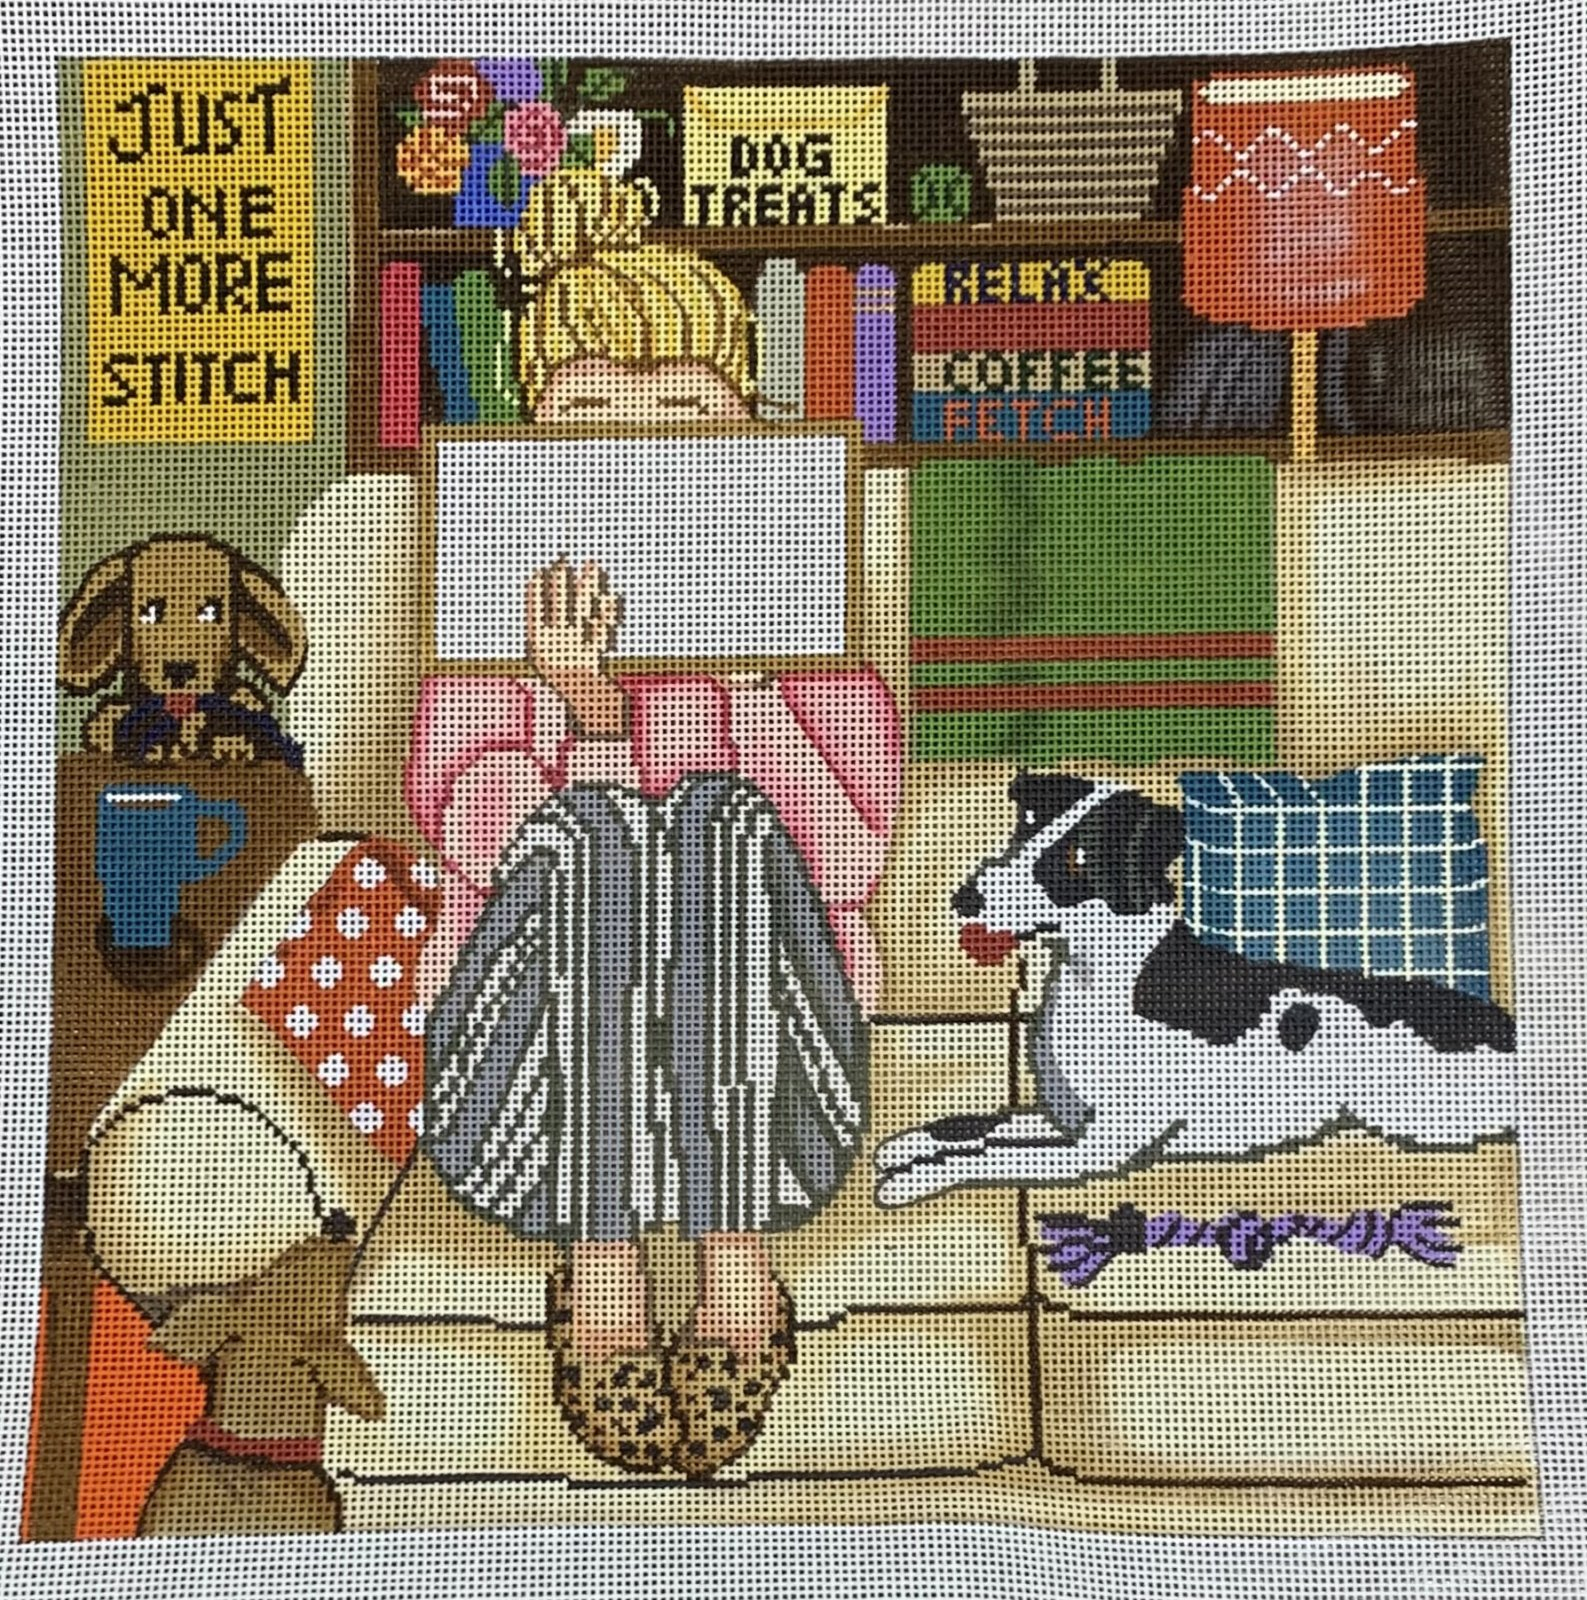 Stitching Girl with Dogs